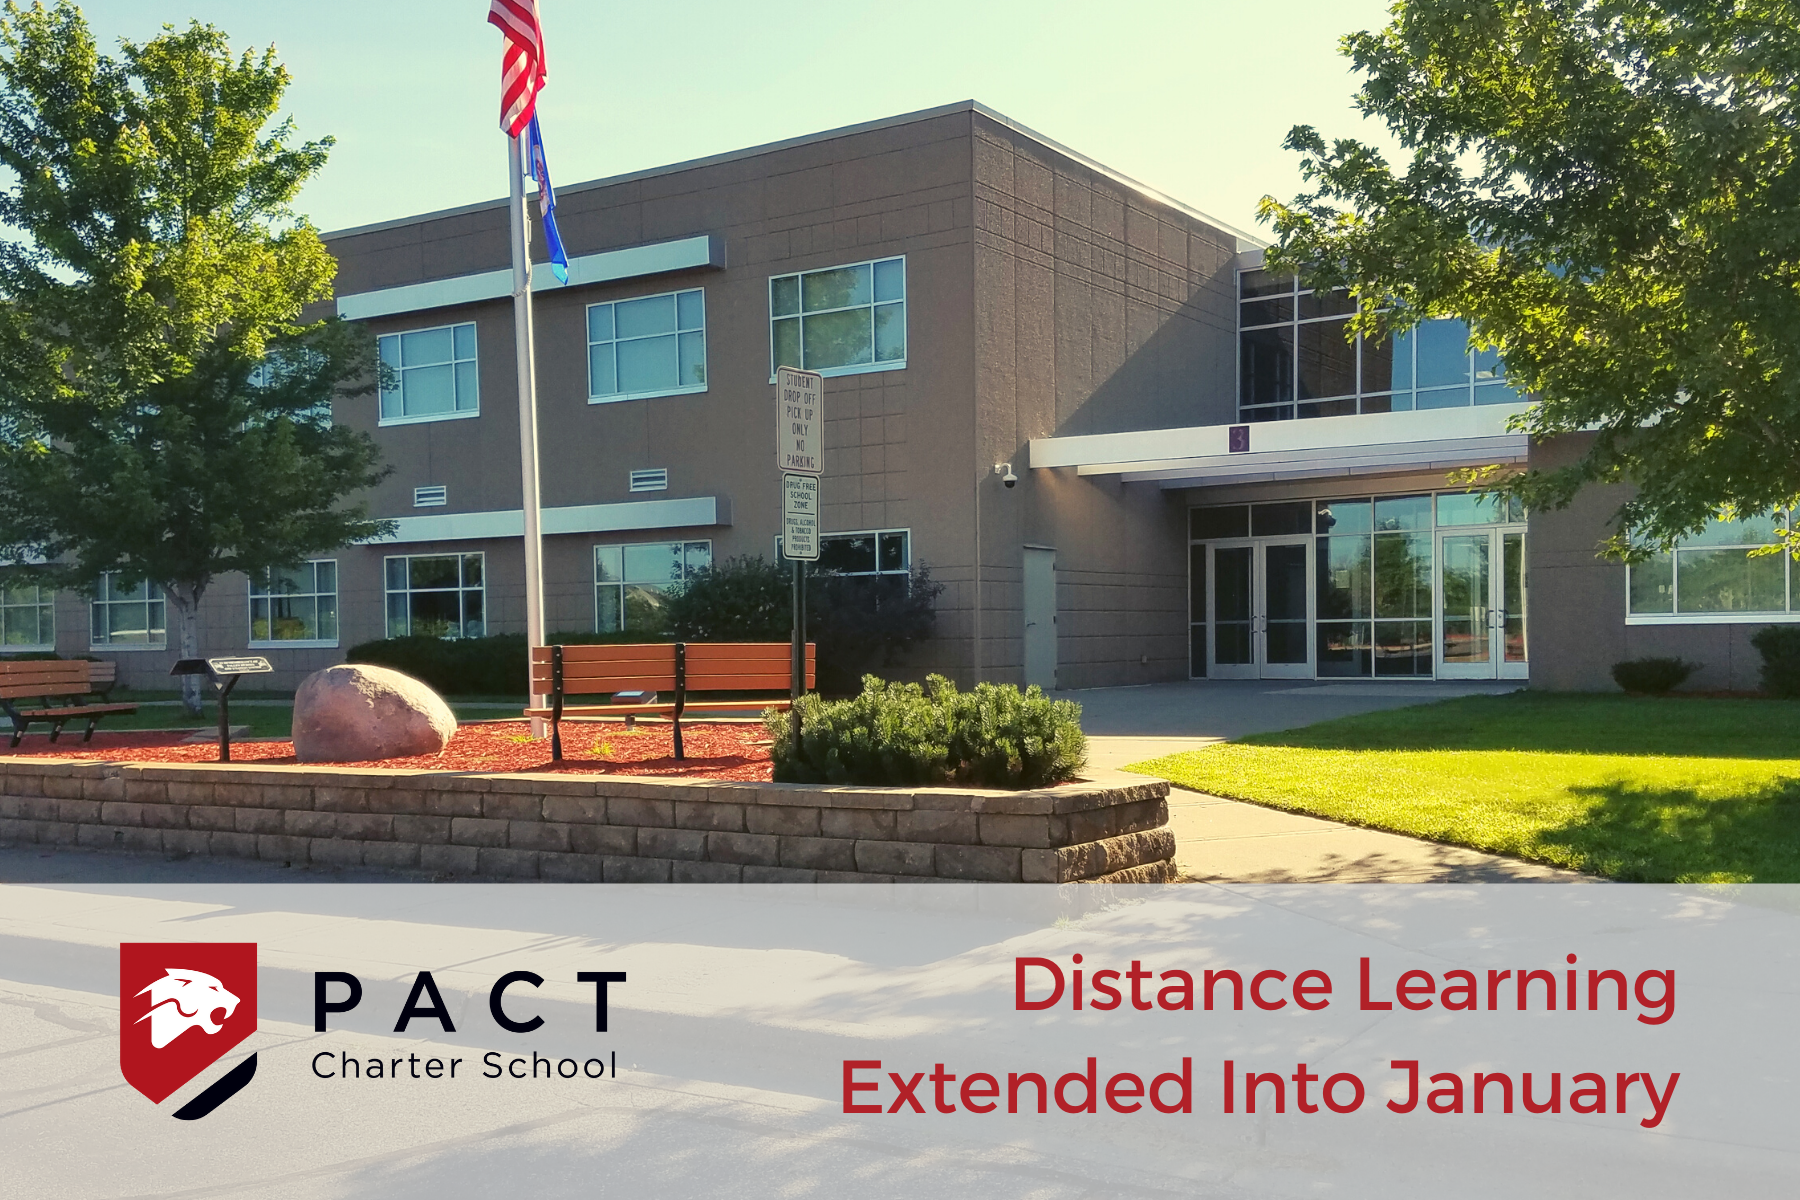 Distance Learning Extended Into January